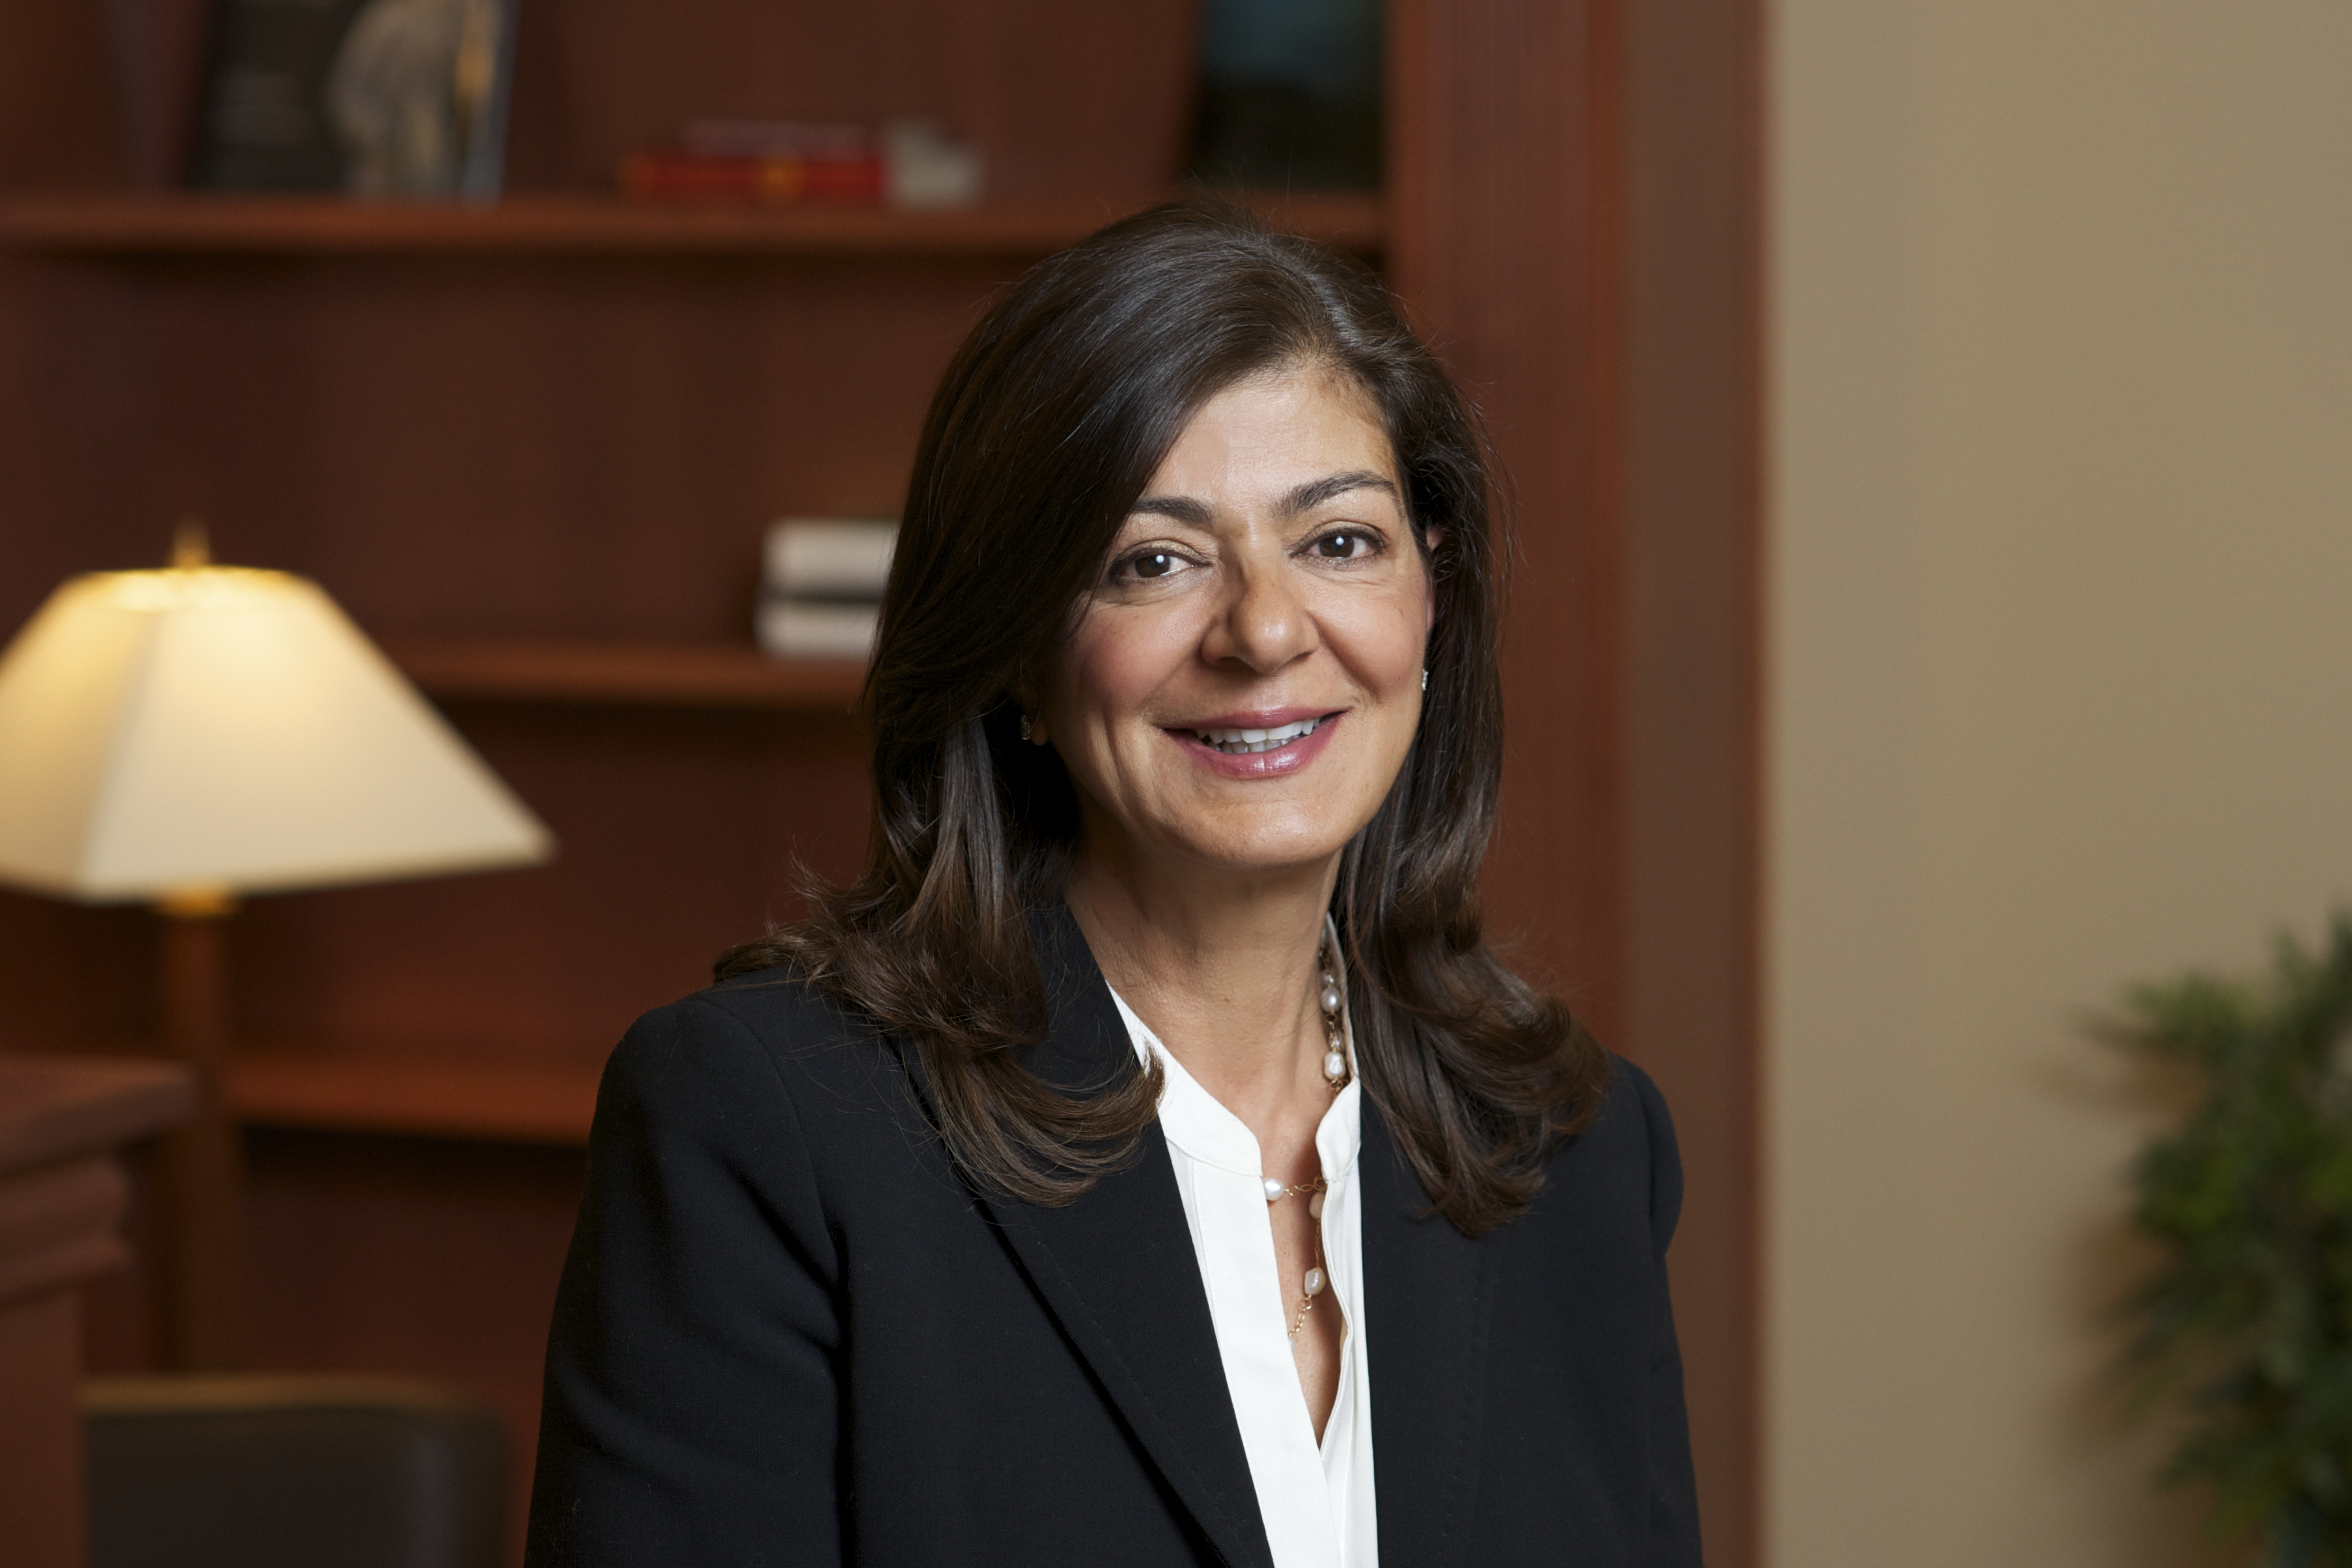 Huntington Hospital New Board Member Sharon Arthofer (Photo: Business Wire)